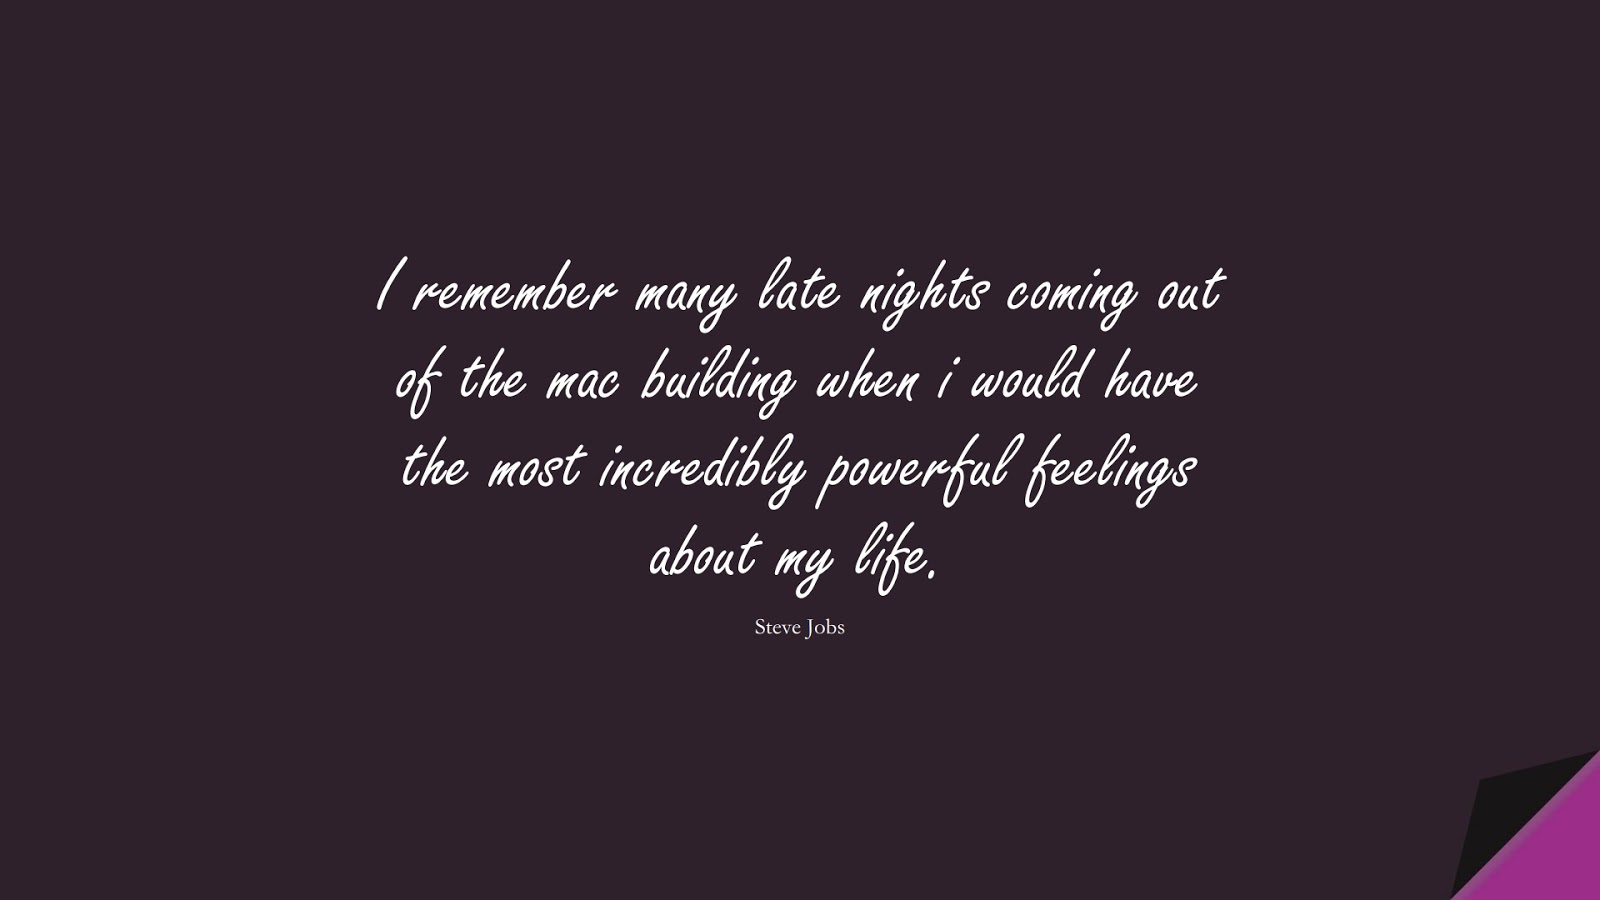 I remember many late nights coming out of the mac building when i would have the most incredibly powerful feelings about my life. (Steve Jobs);  #SteveJobsQuotes